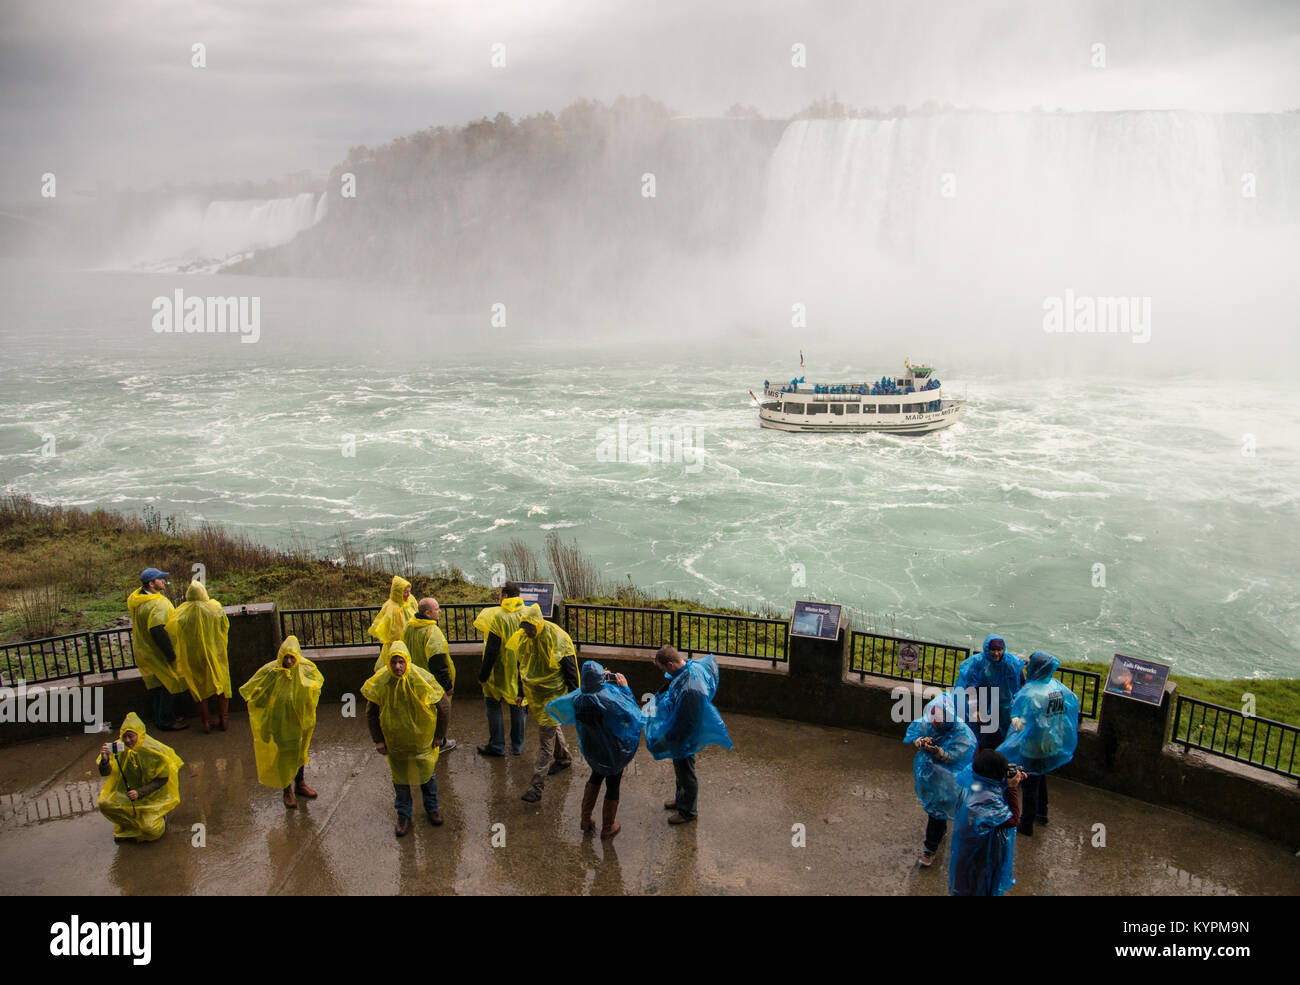 Maid of the Mist in Niagara River from viewing platform at Journey Behind the Falls attraction in Niagara Falls, Stock Photo